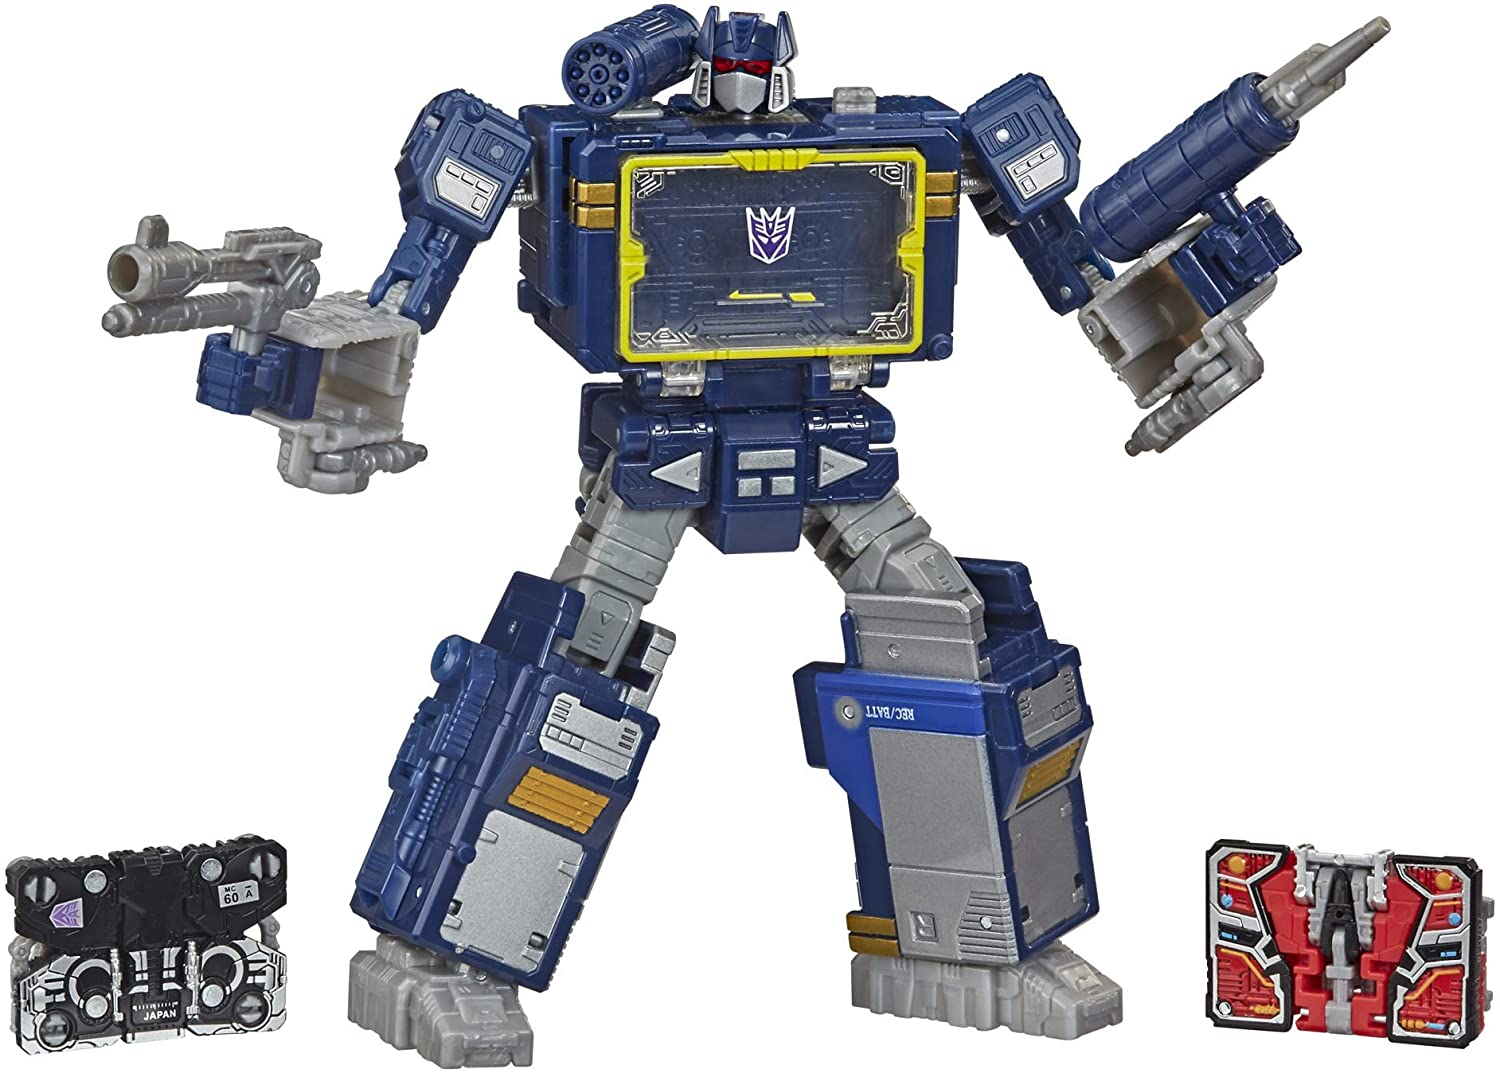 Transformers Netflix War for Cybertron Trilogy Voyager Class Soundwave Battle 3-Pack with Laserbeak and Ravage